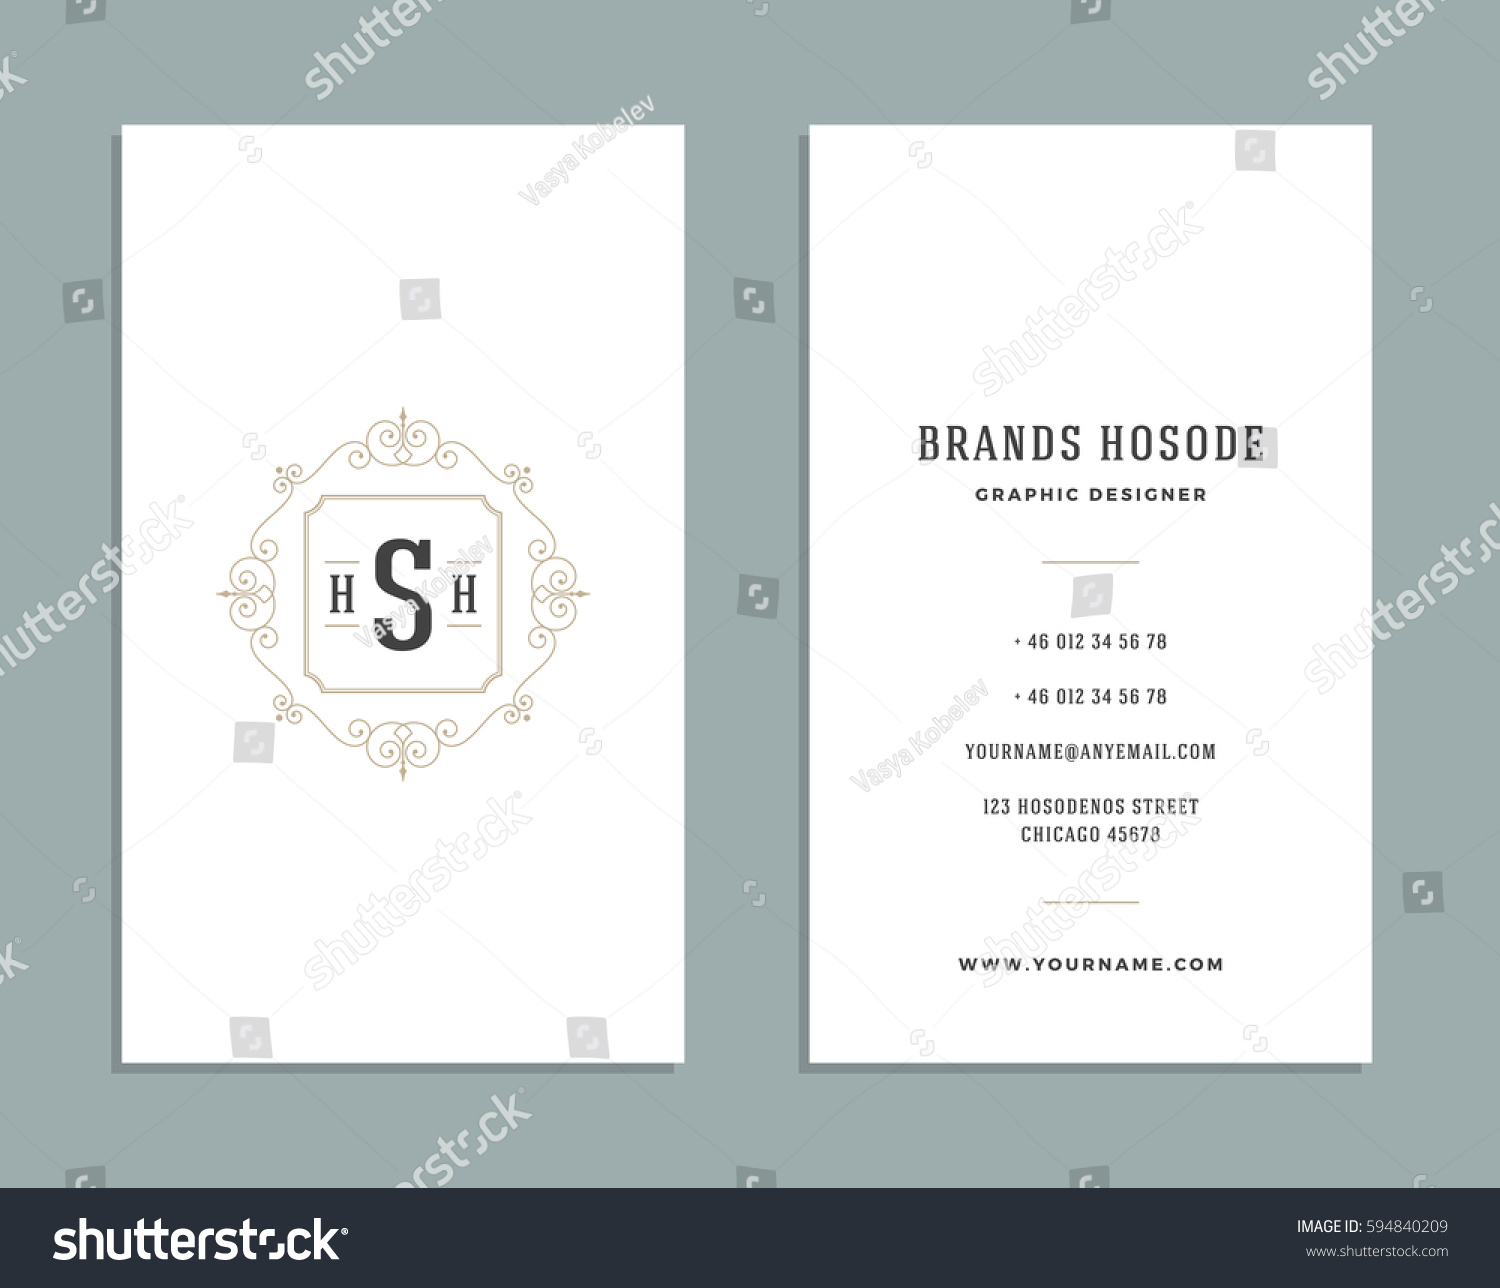 Vintage ornament business card vector template stock vector vintage ornament business card vector template retro luxury style royal design flourishes ornamental magicingreecefo Gallery